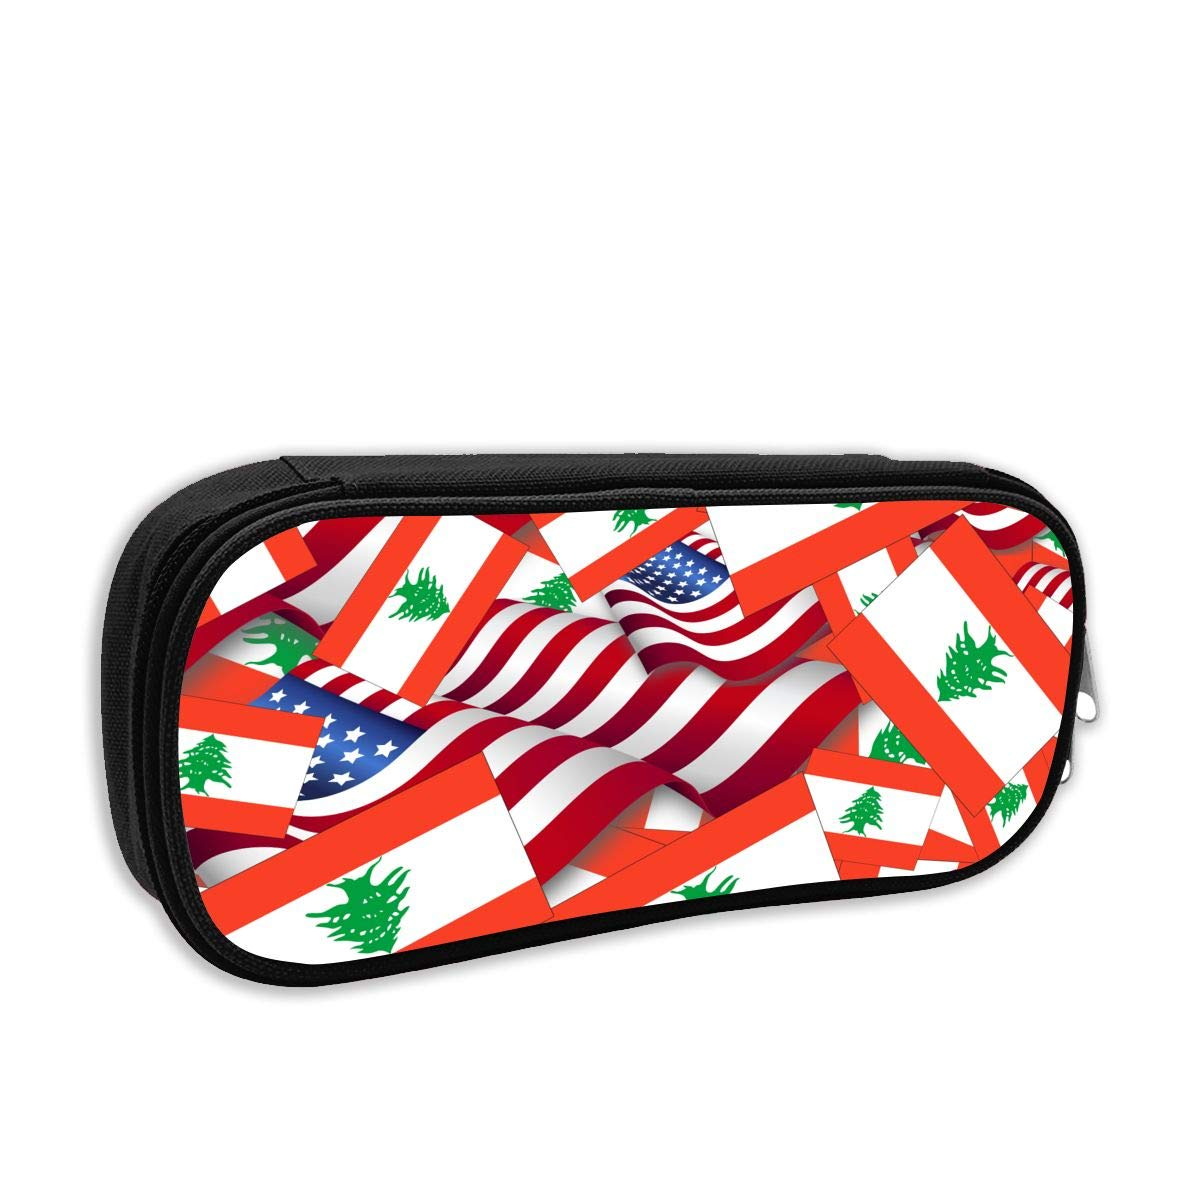 Pencil Case - Lebanon Flag with America Flag Pencil Pouch Stationery Organizer Multifunction Cosmetic Makeup Bag Perfect Holder for Pencils and Pens